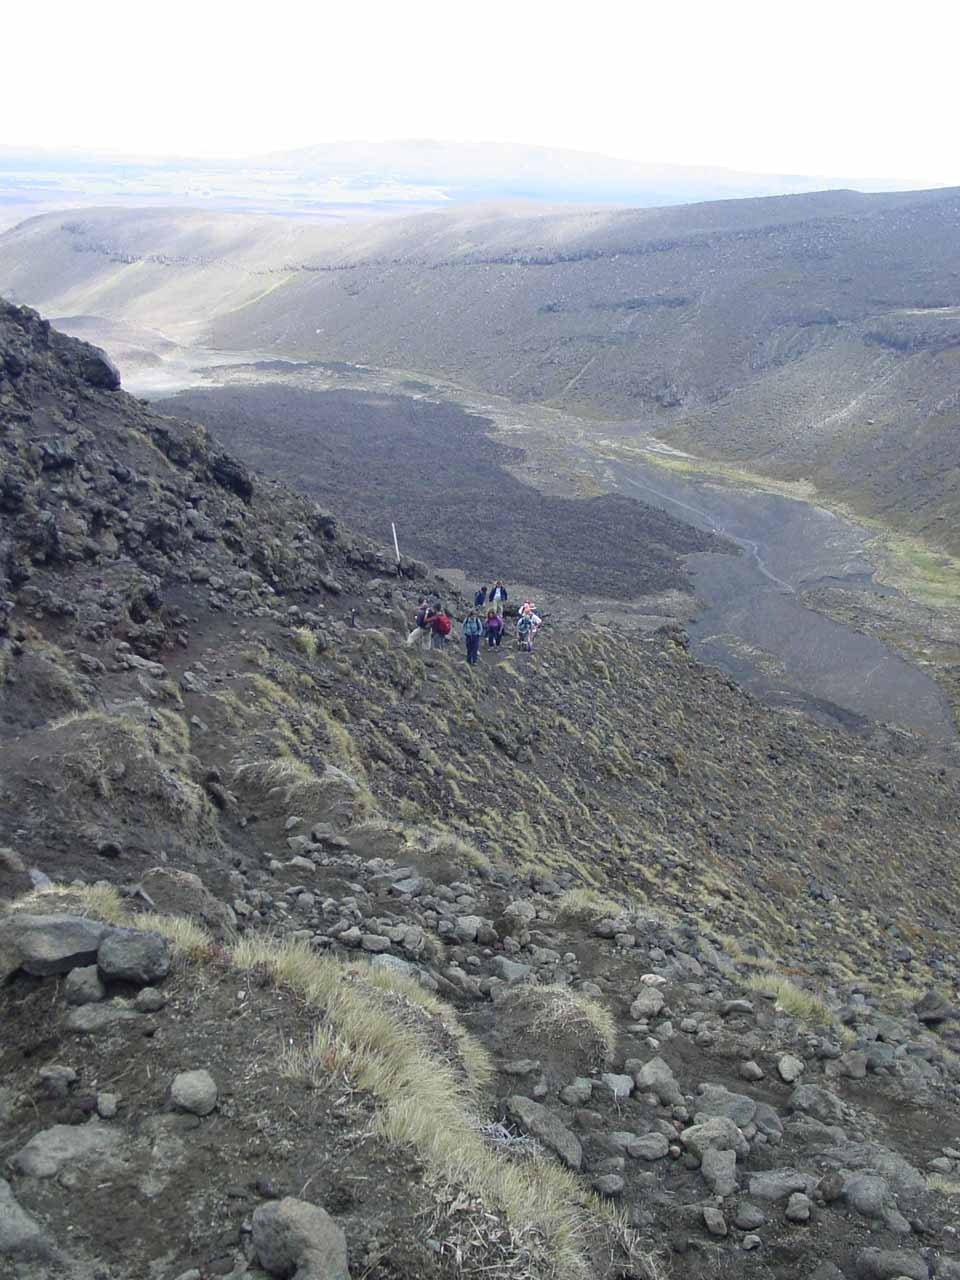 Looking down at more people climbing up and catching up to us on the Tongariro Crossing